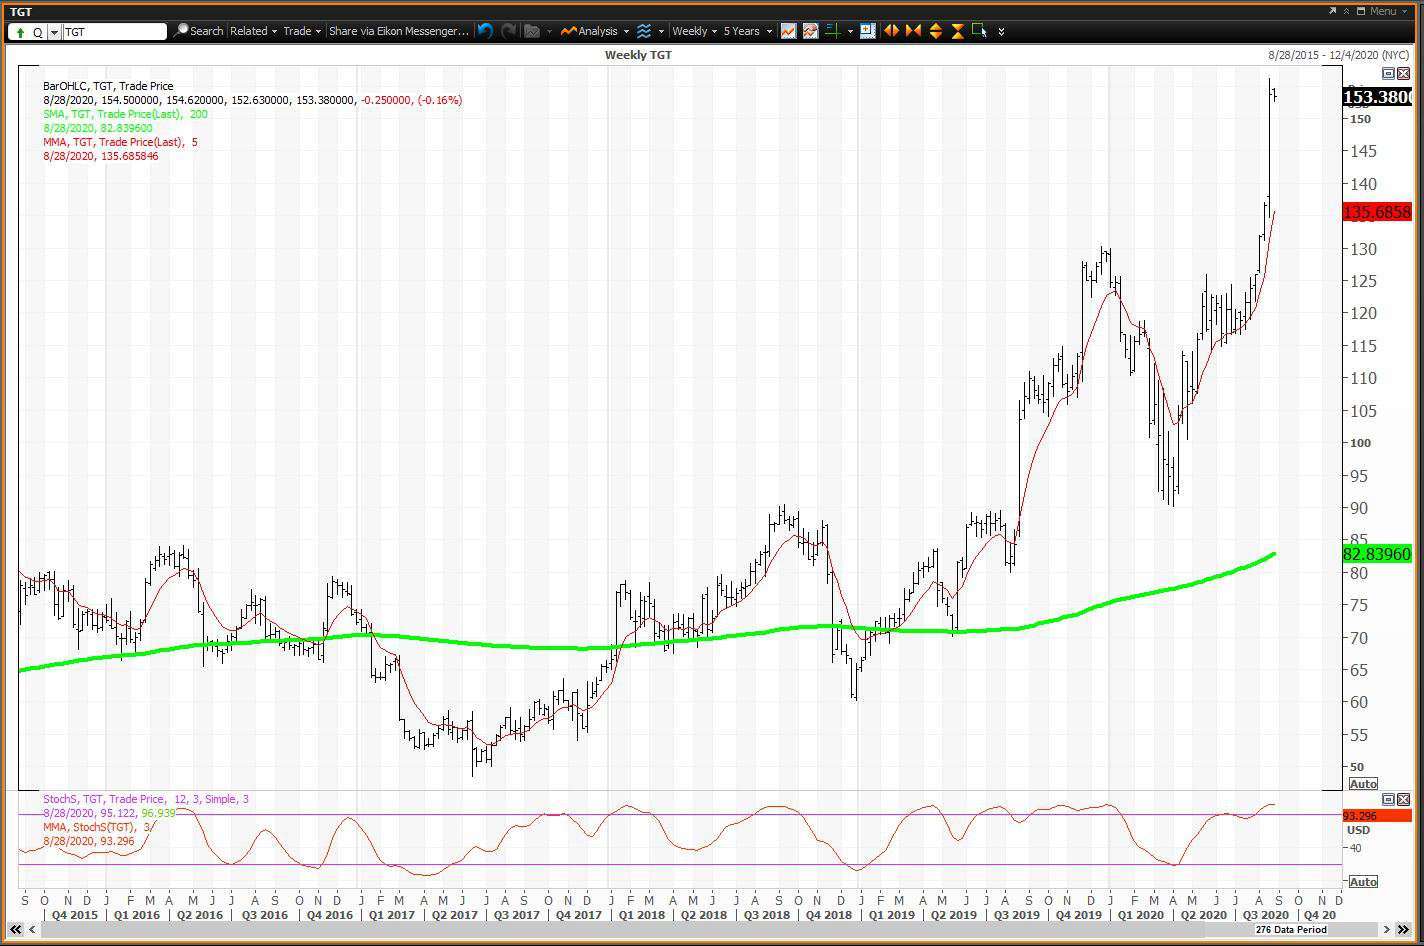 Weekly chart showing the share price performance of Target Corporation (TGT)